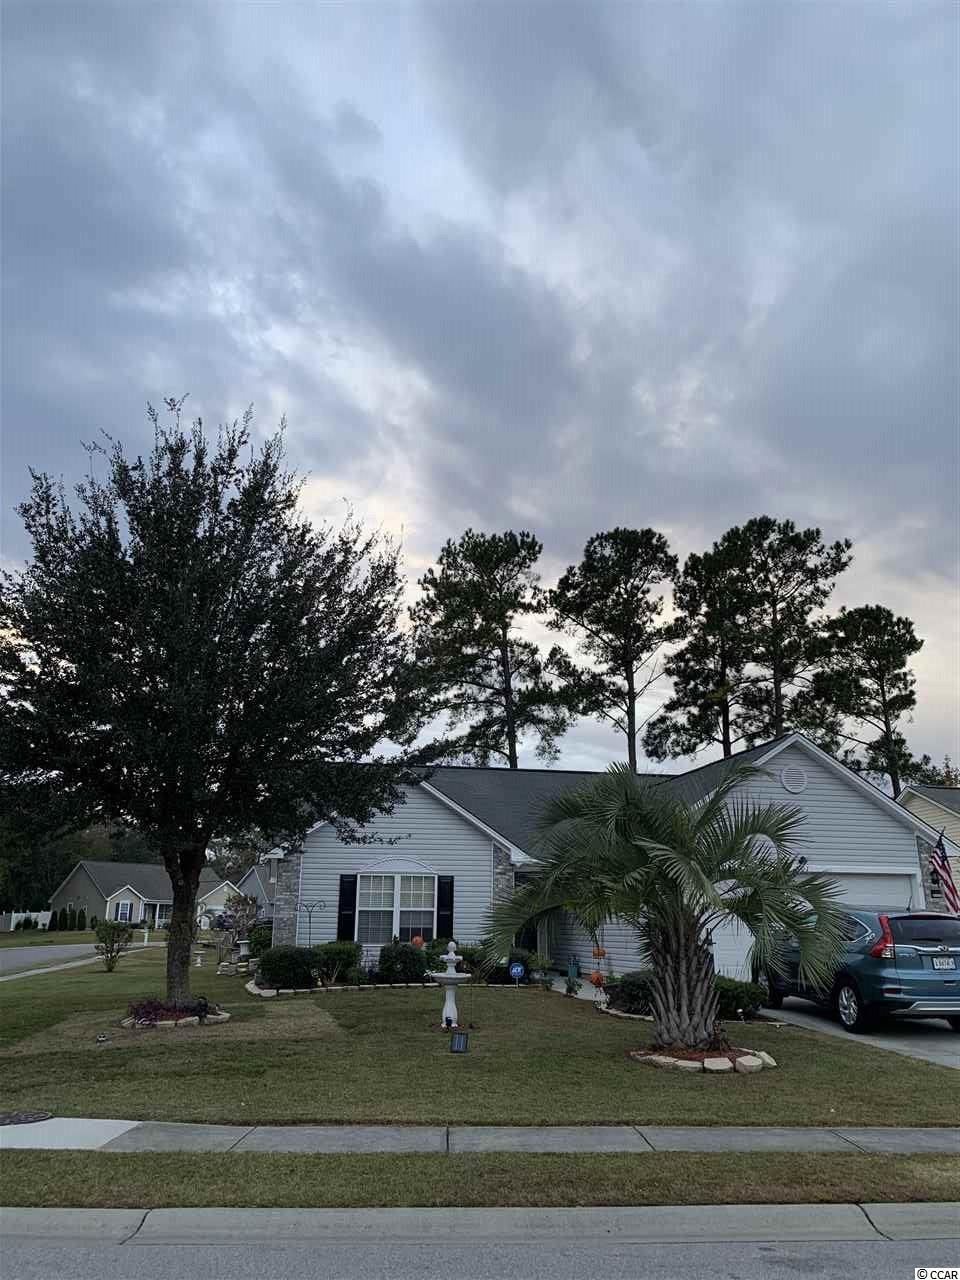 Three Bedroom, Two Bath home in Hidden Lakes village has an open floor plan with a beautiful screen porch on the back overlooking a lake.  Close to the ocean, restaurants and low HOA fees.   There is a community pool, park, tennis court and clubhouse.